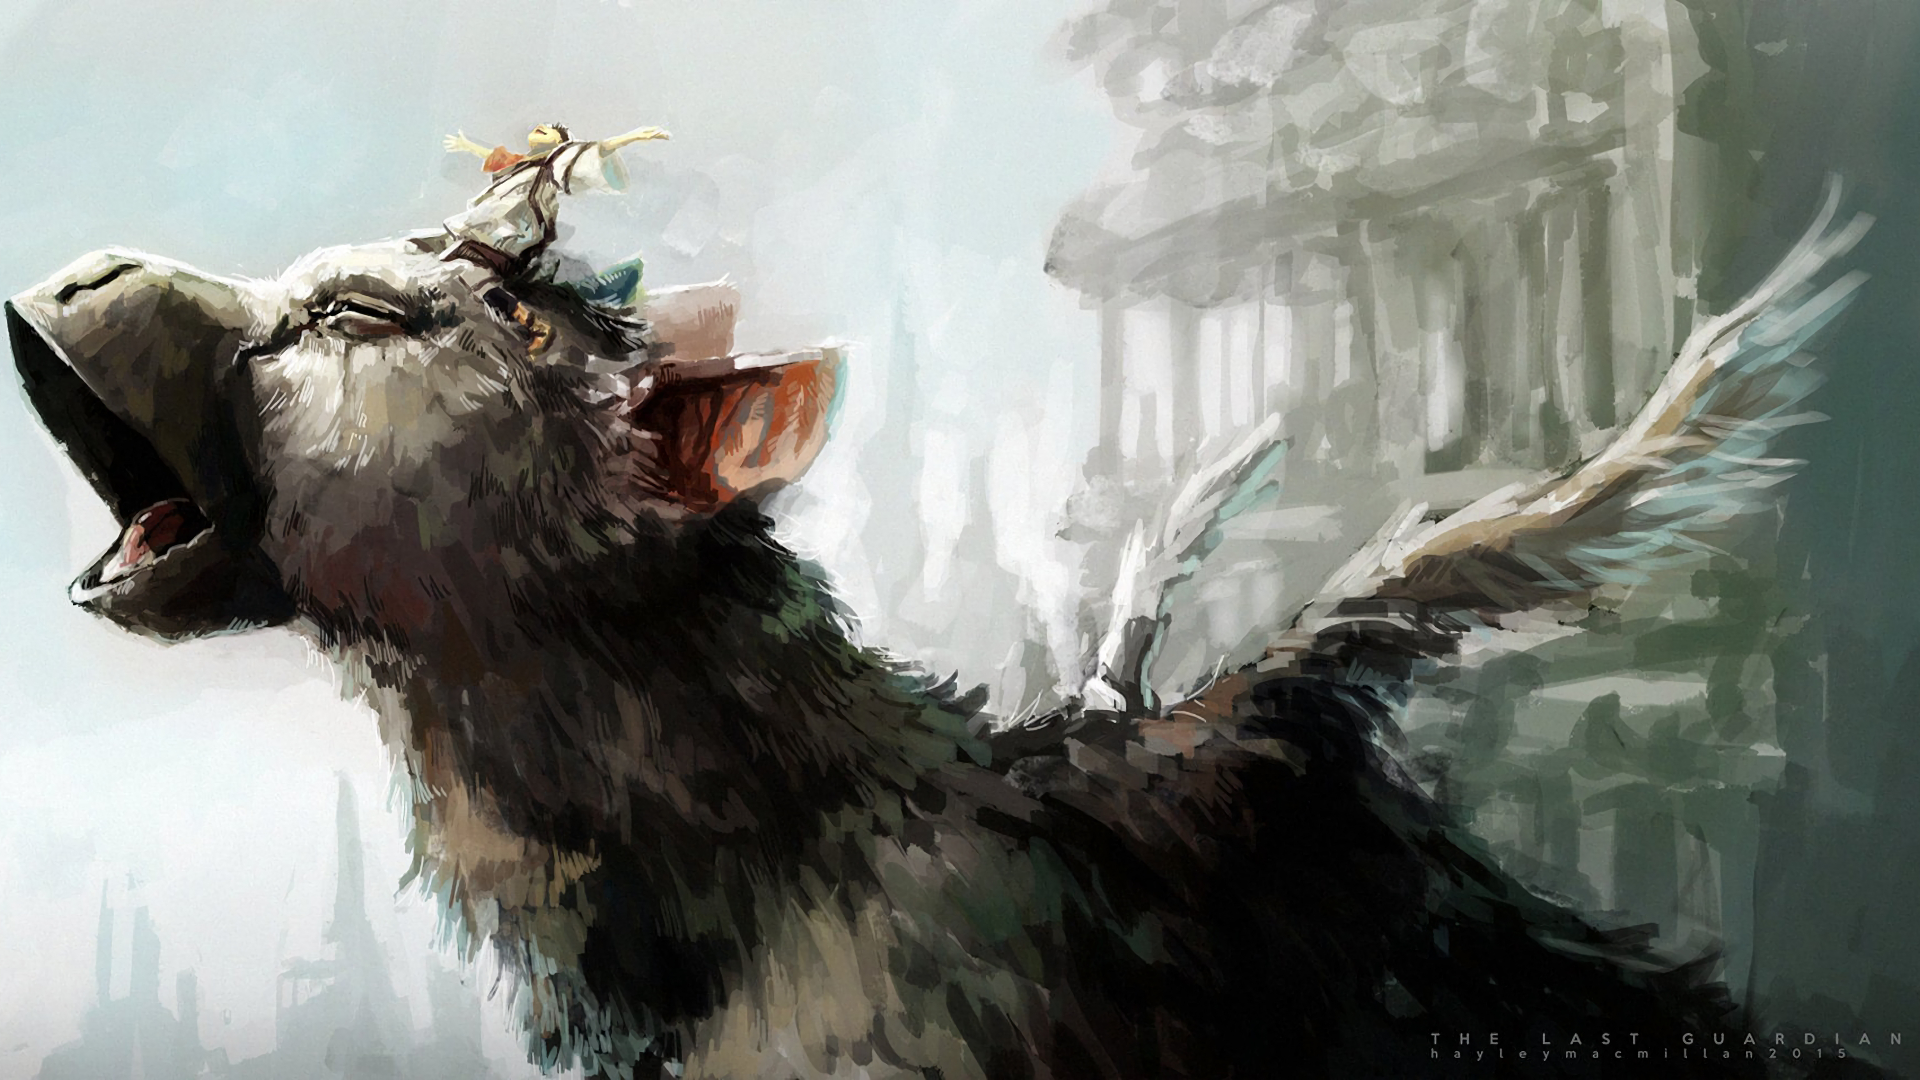 The Last Guardian Trico Wallpaper High Quality Resolution Shadow